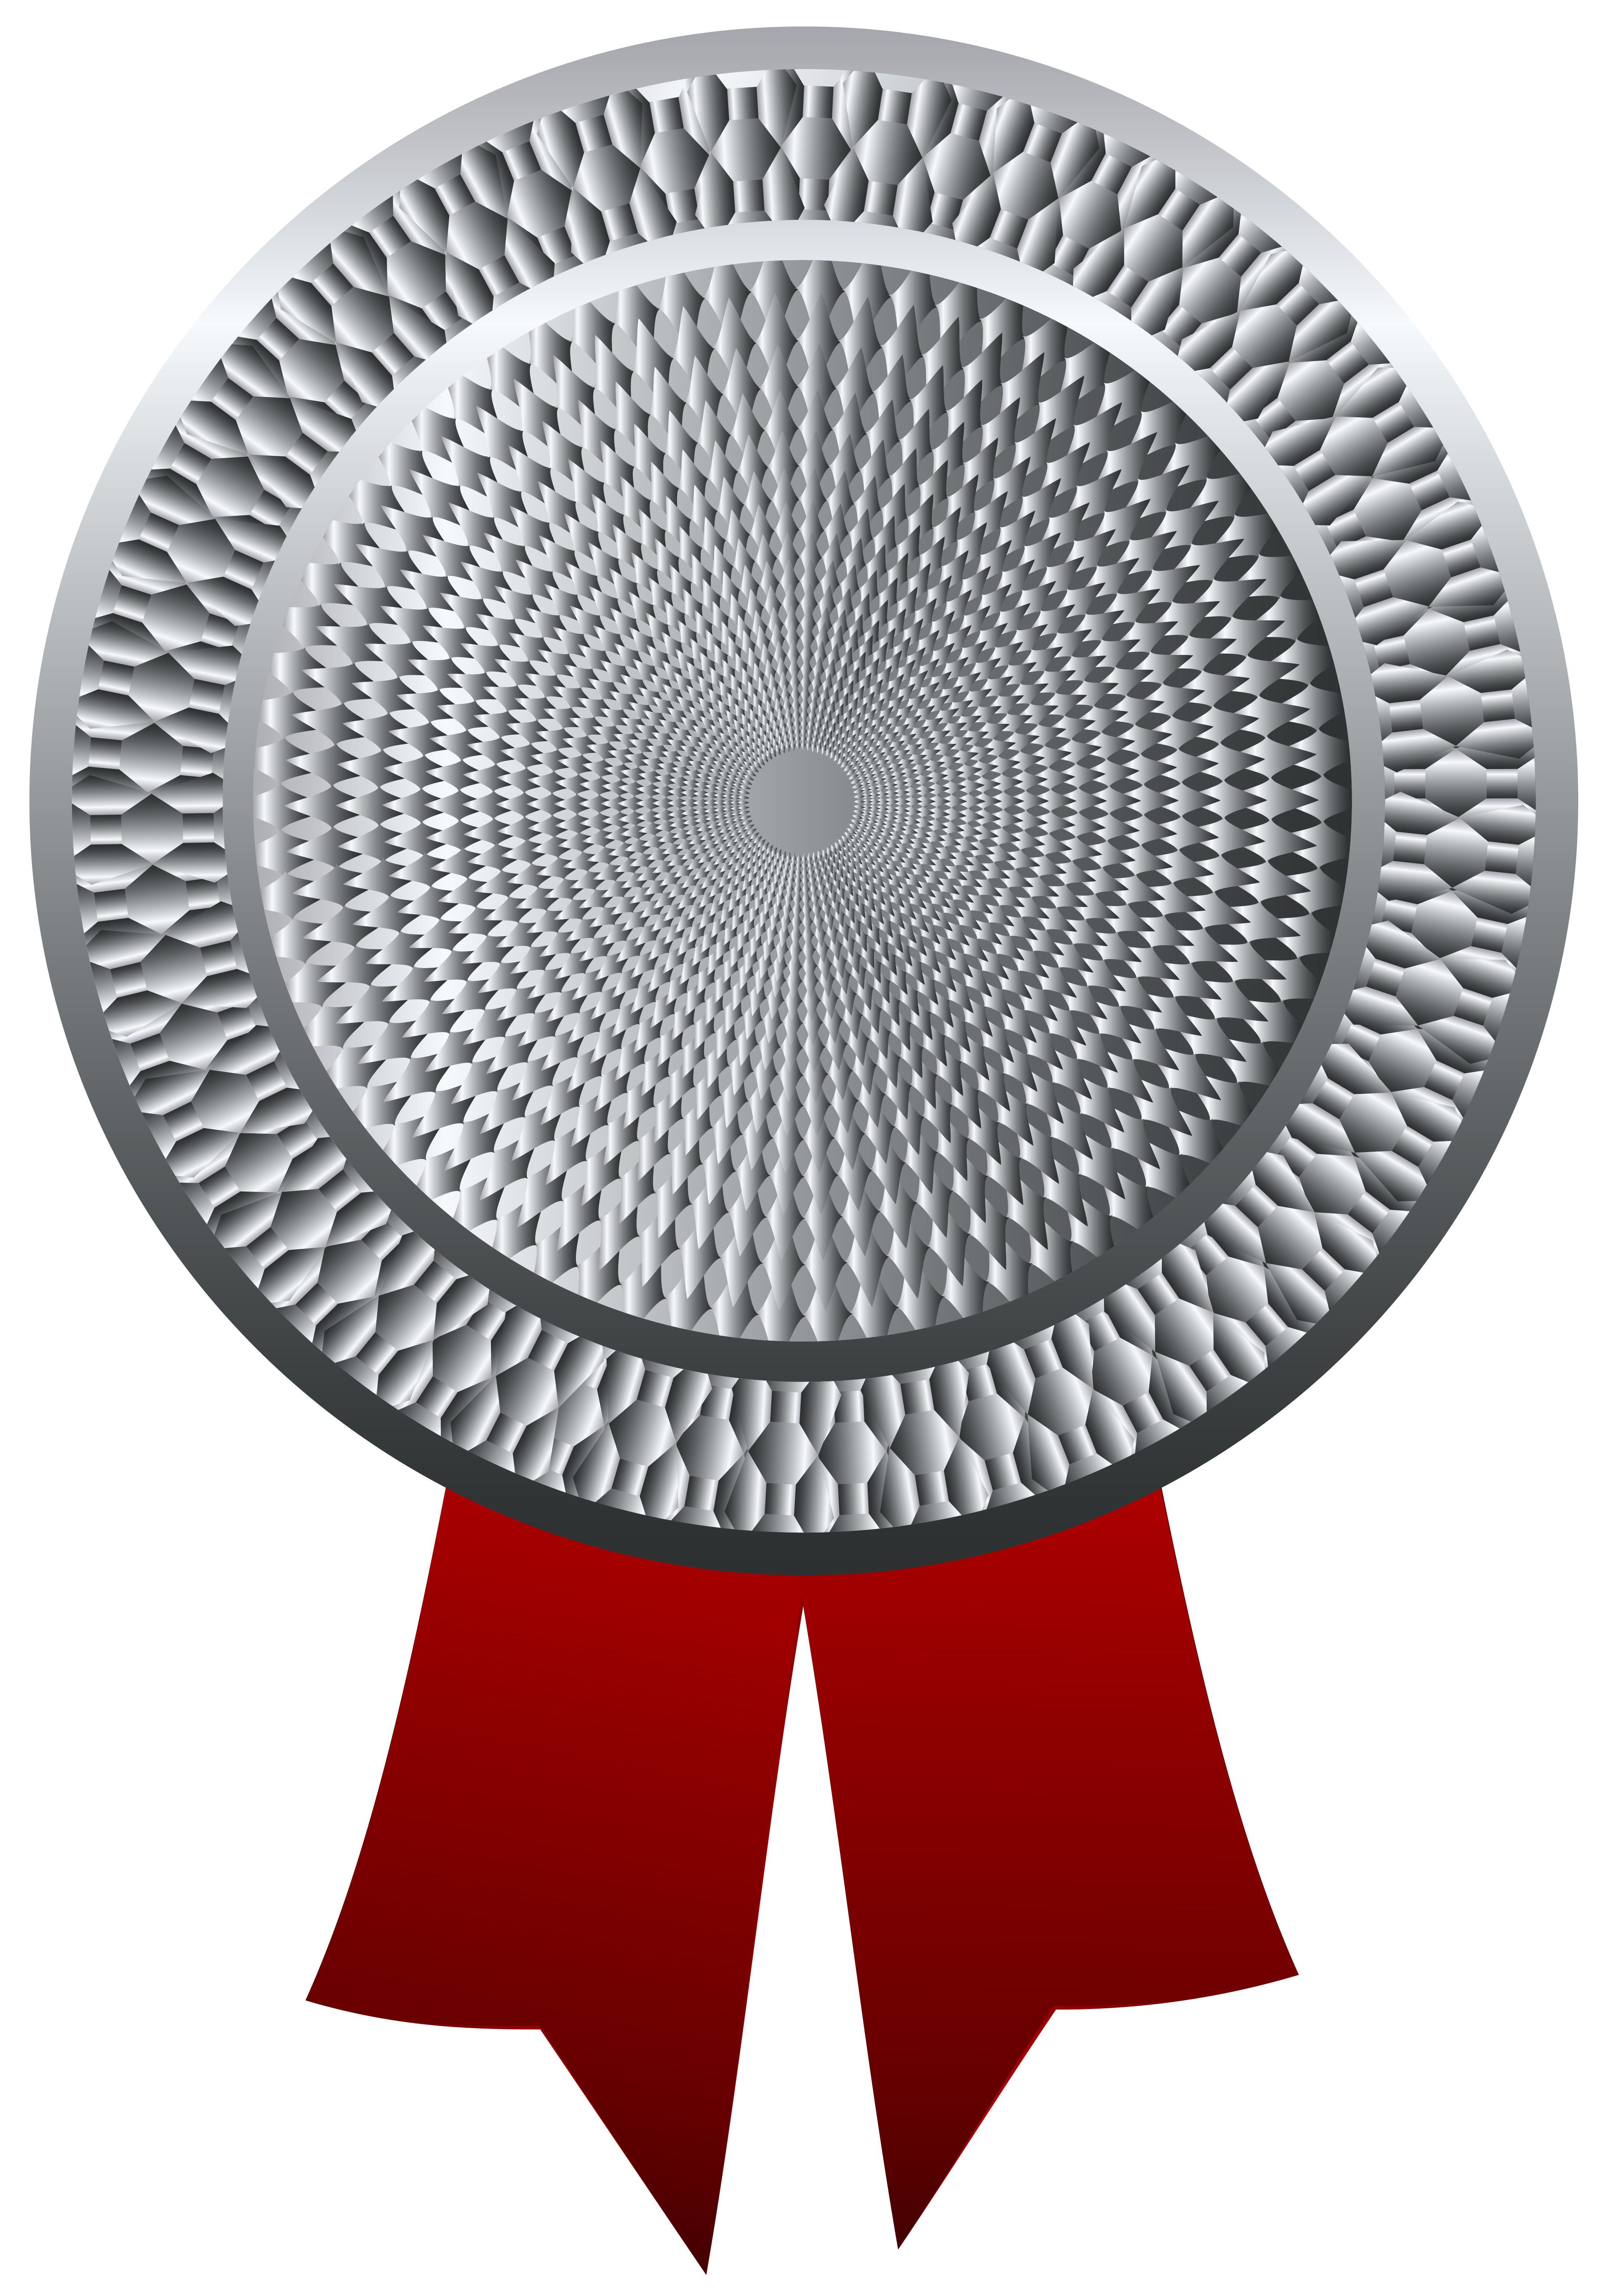 clip art freeuse download Medal clipart silver. Png image gallery yopriceville.